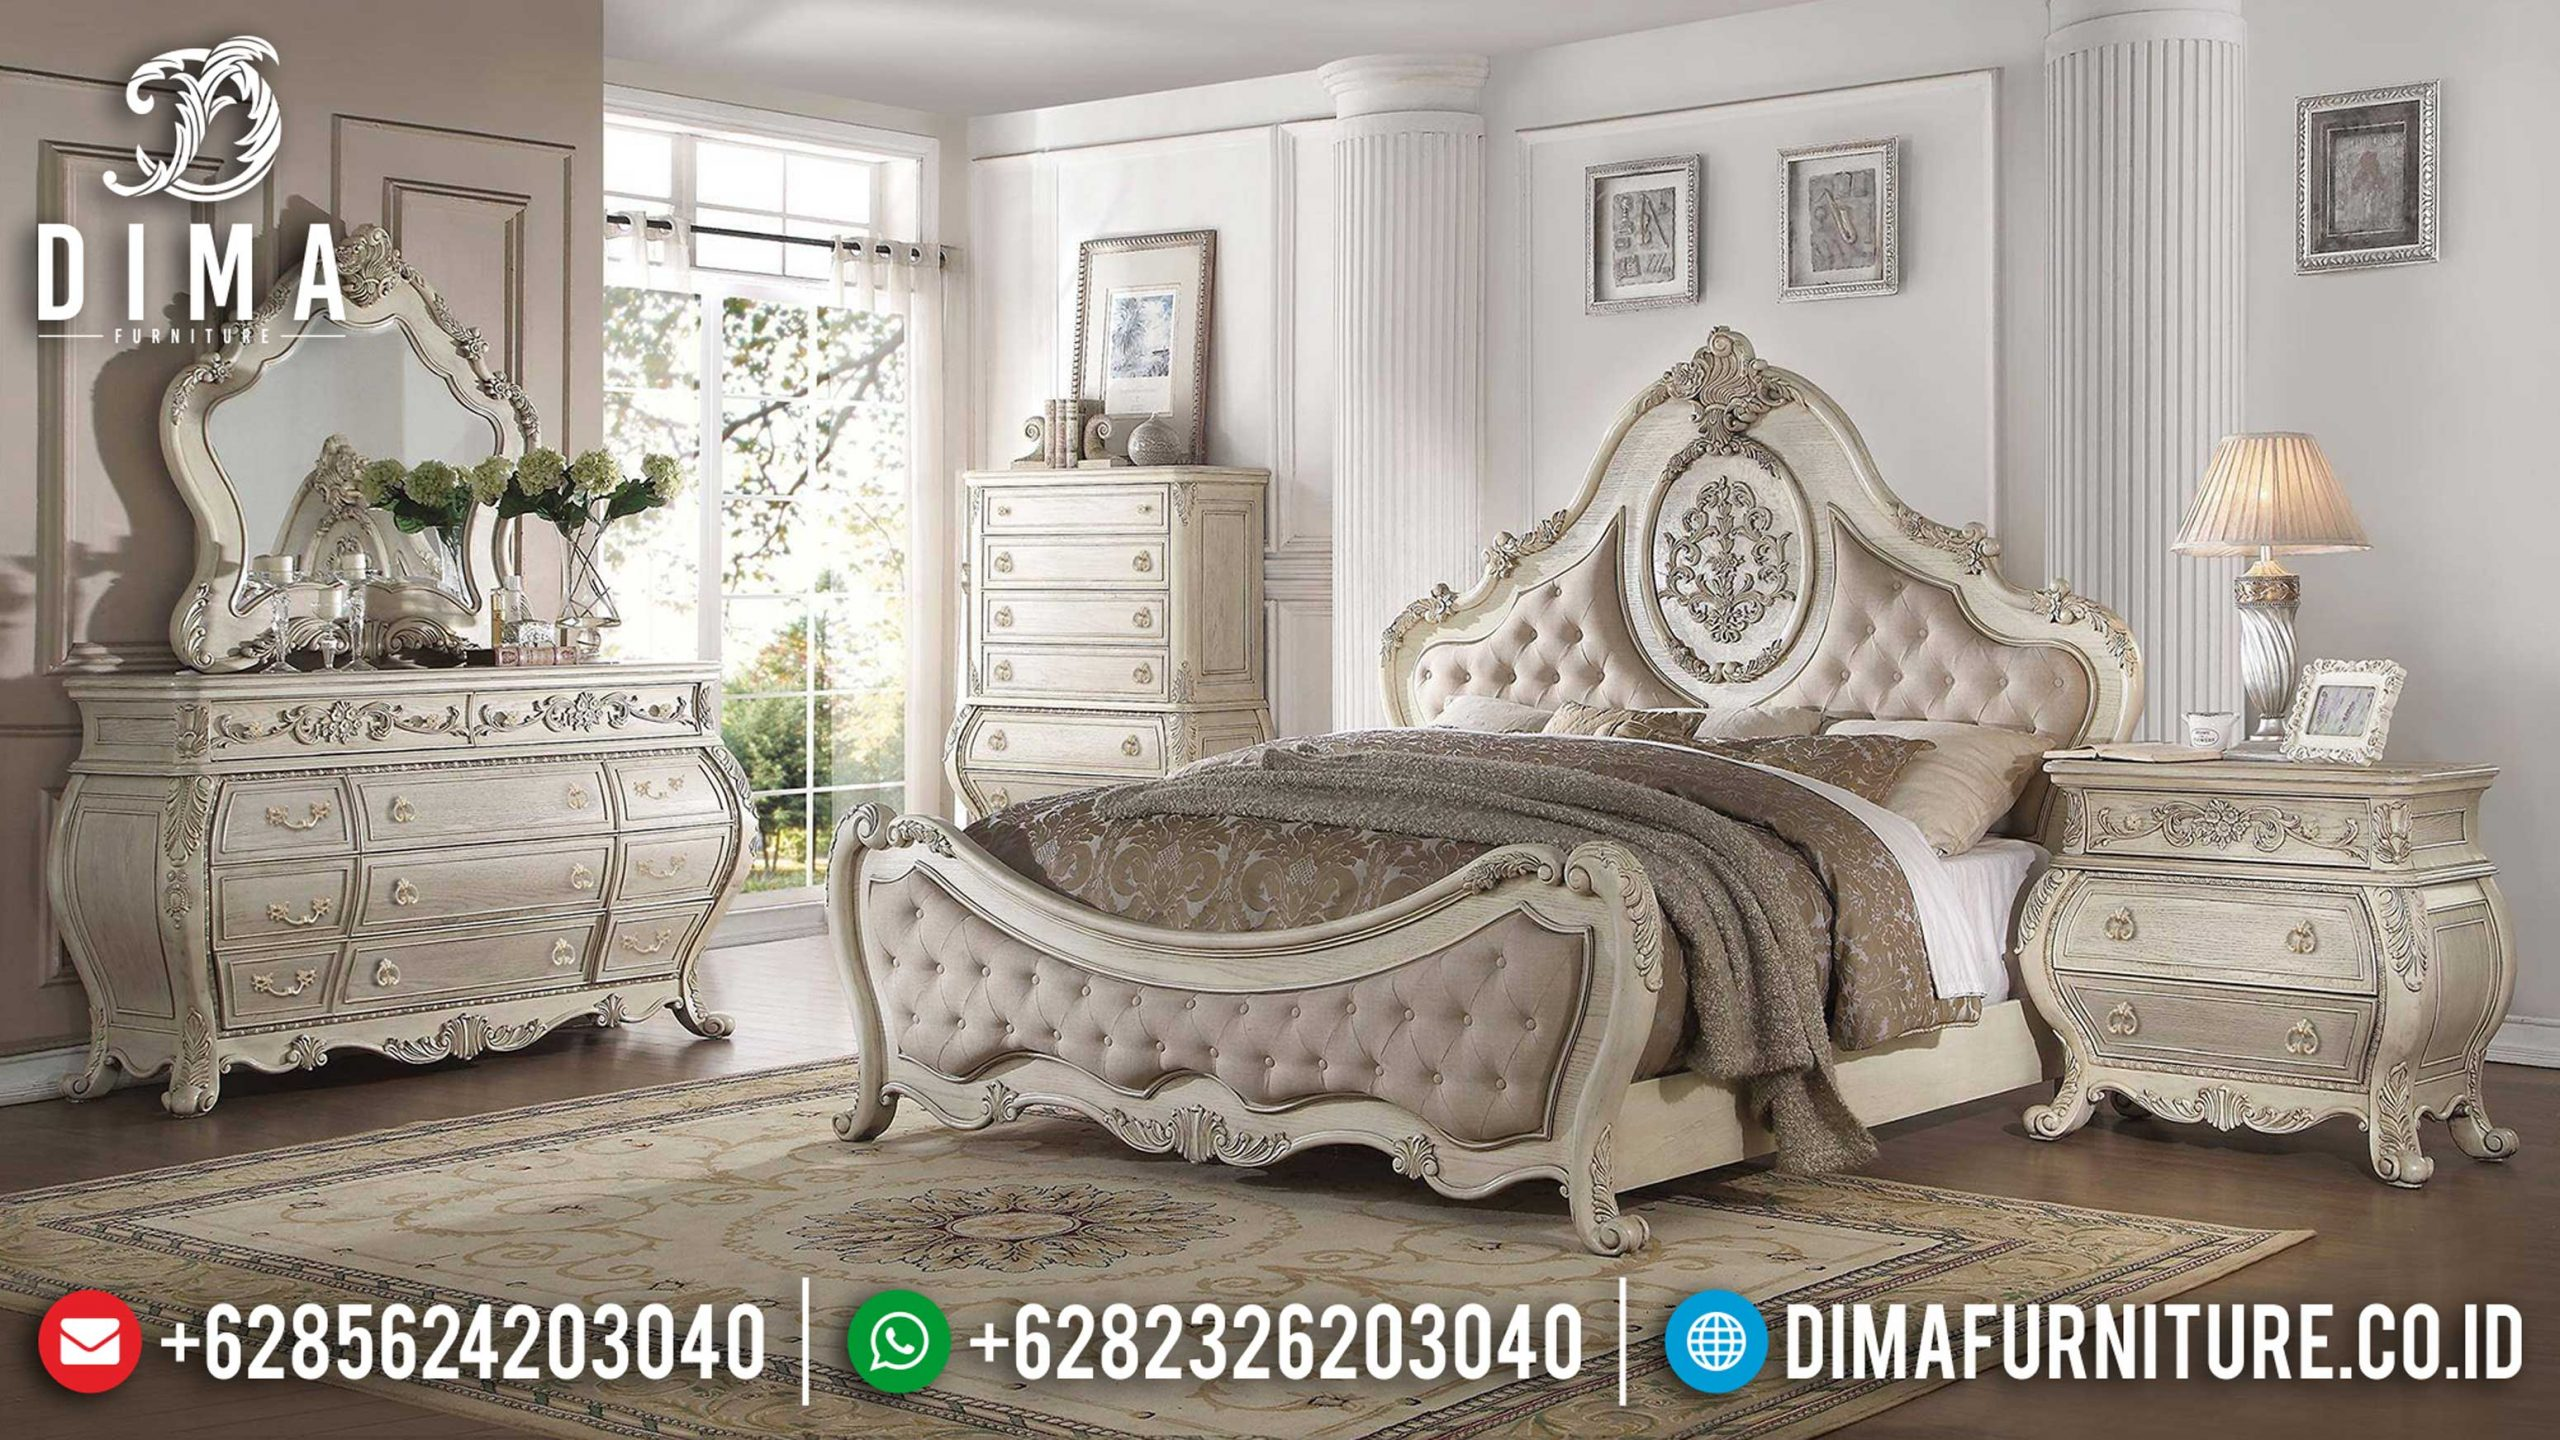 Gorgeous Tempat Tidur Mewah Ukiran Luxurious Royal Design Furniture TTJ-1105